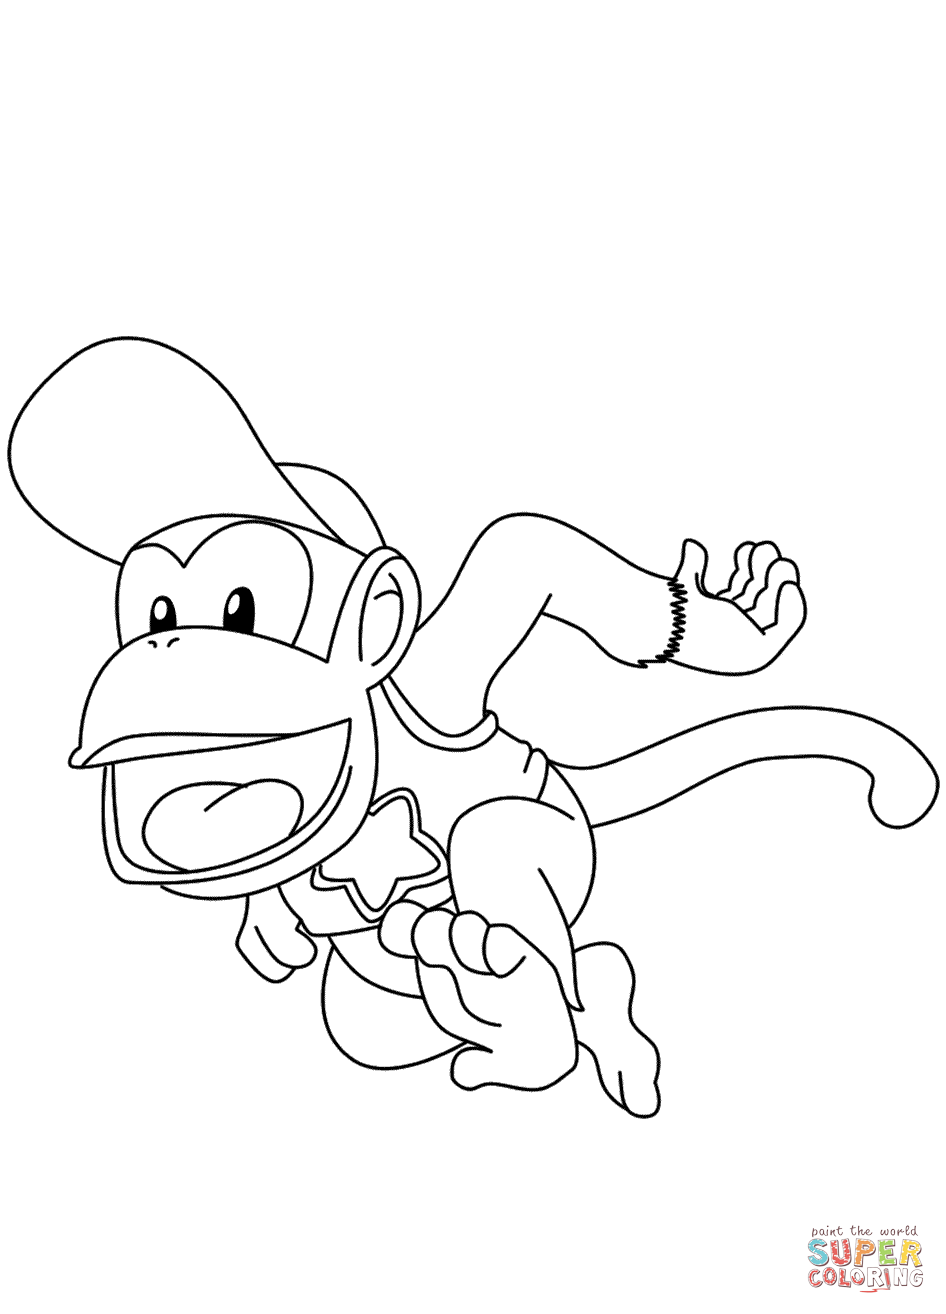 Diddy Kong Coloring Page Free Printable Coloring Pages